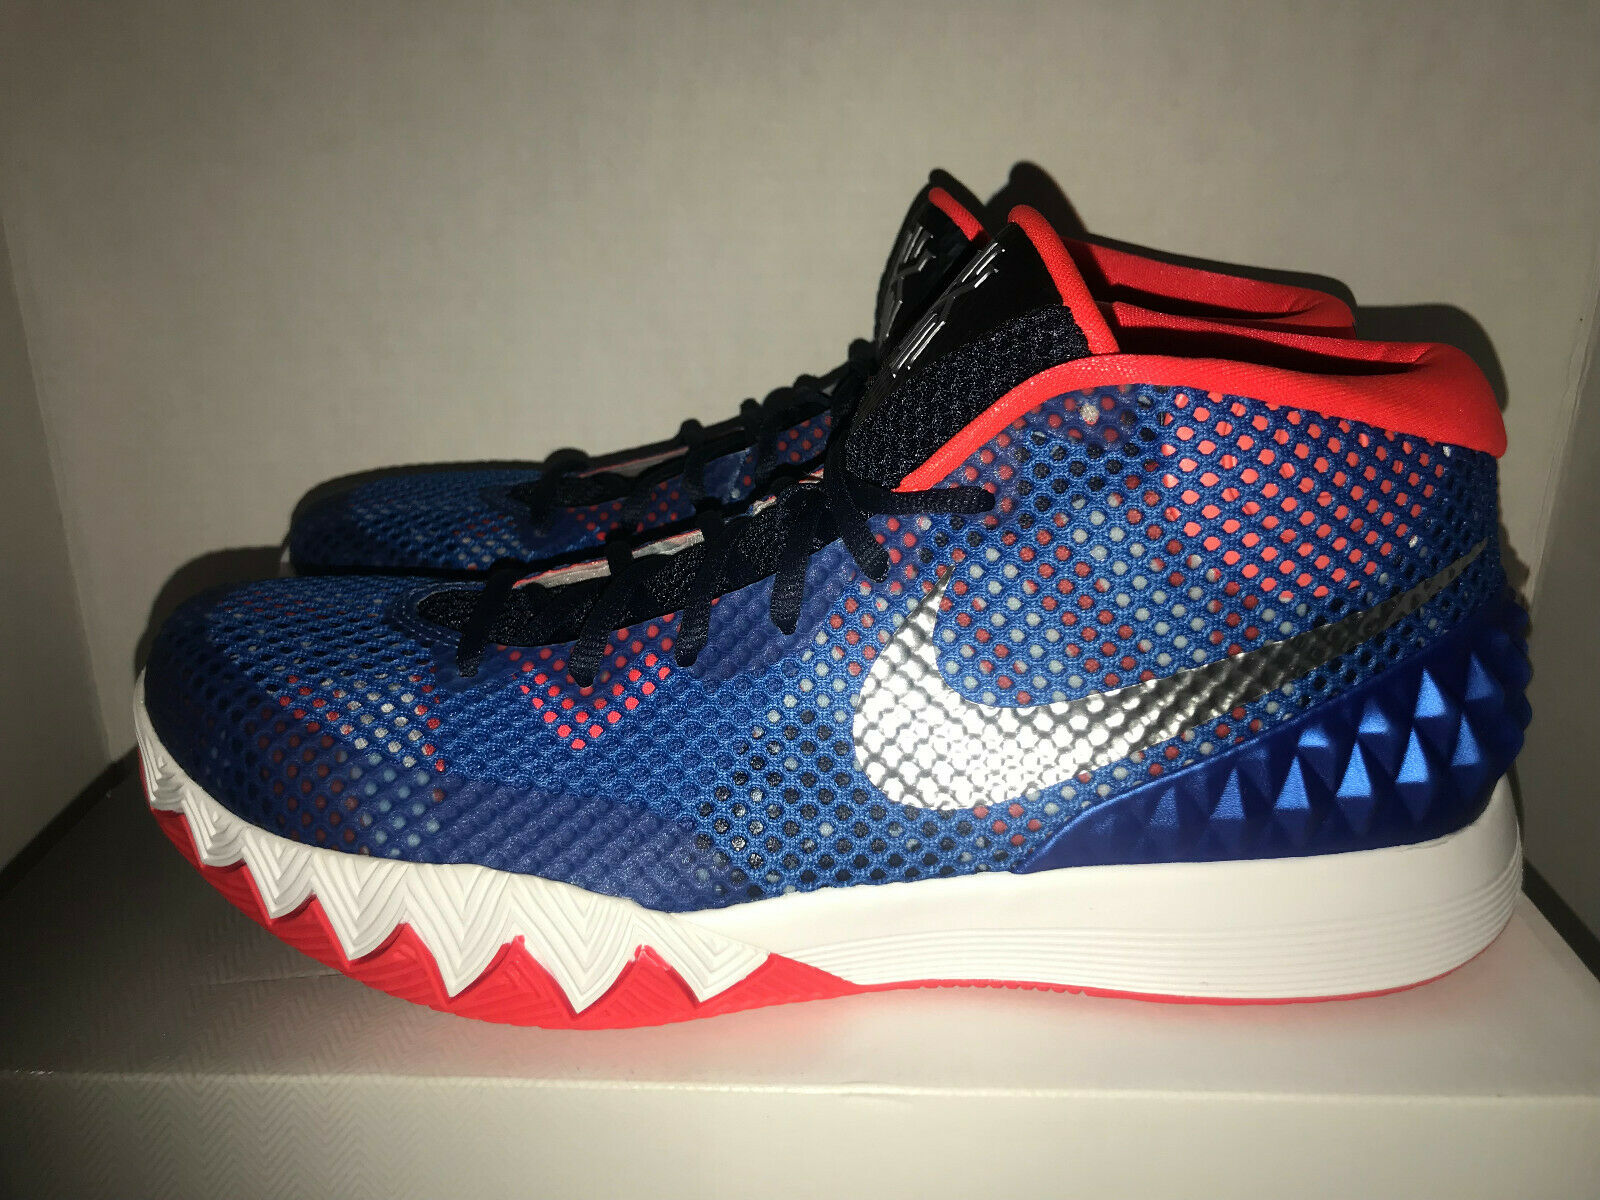 finest selection 45199 0ad0a Nike Kyrie 1 Basketball Shoes 4th of July Independence Day 705277-401 Size  11